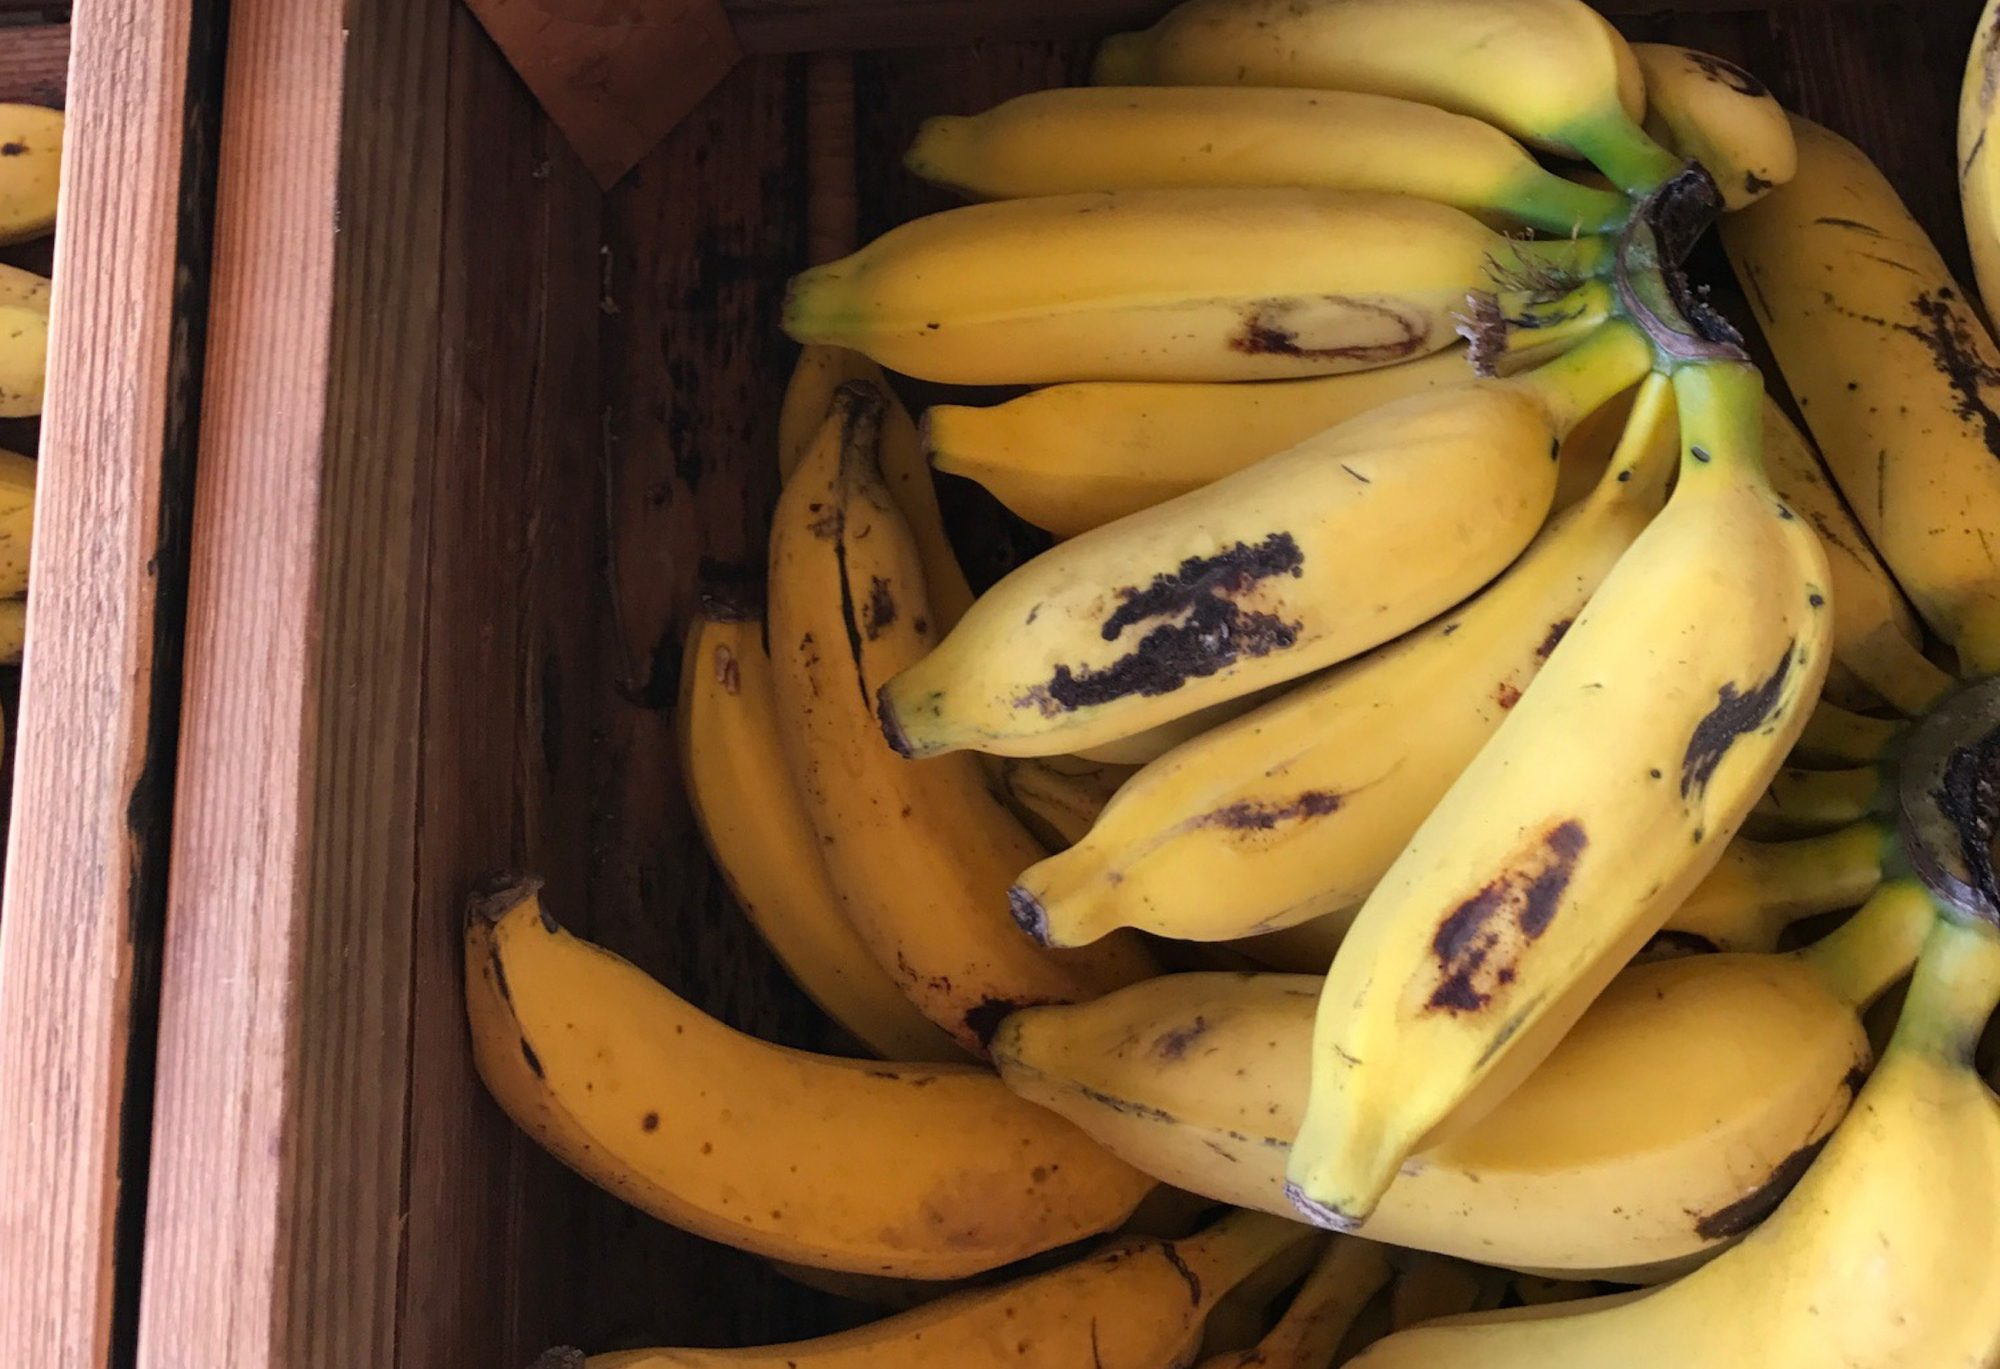 Apple Bananas Will Change the Way You Think About Bananas